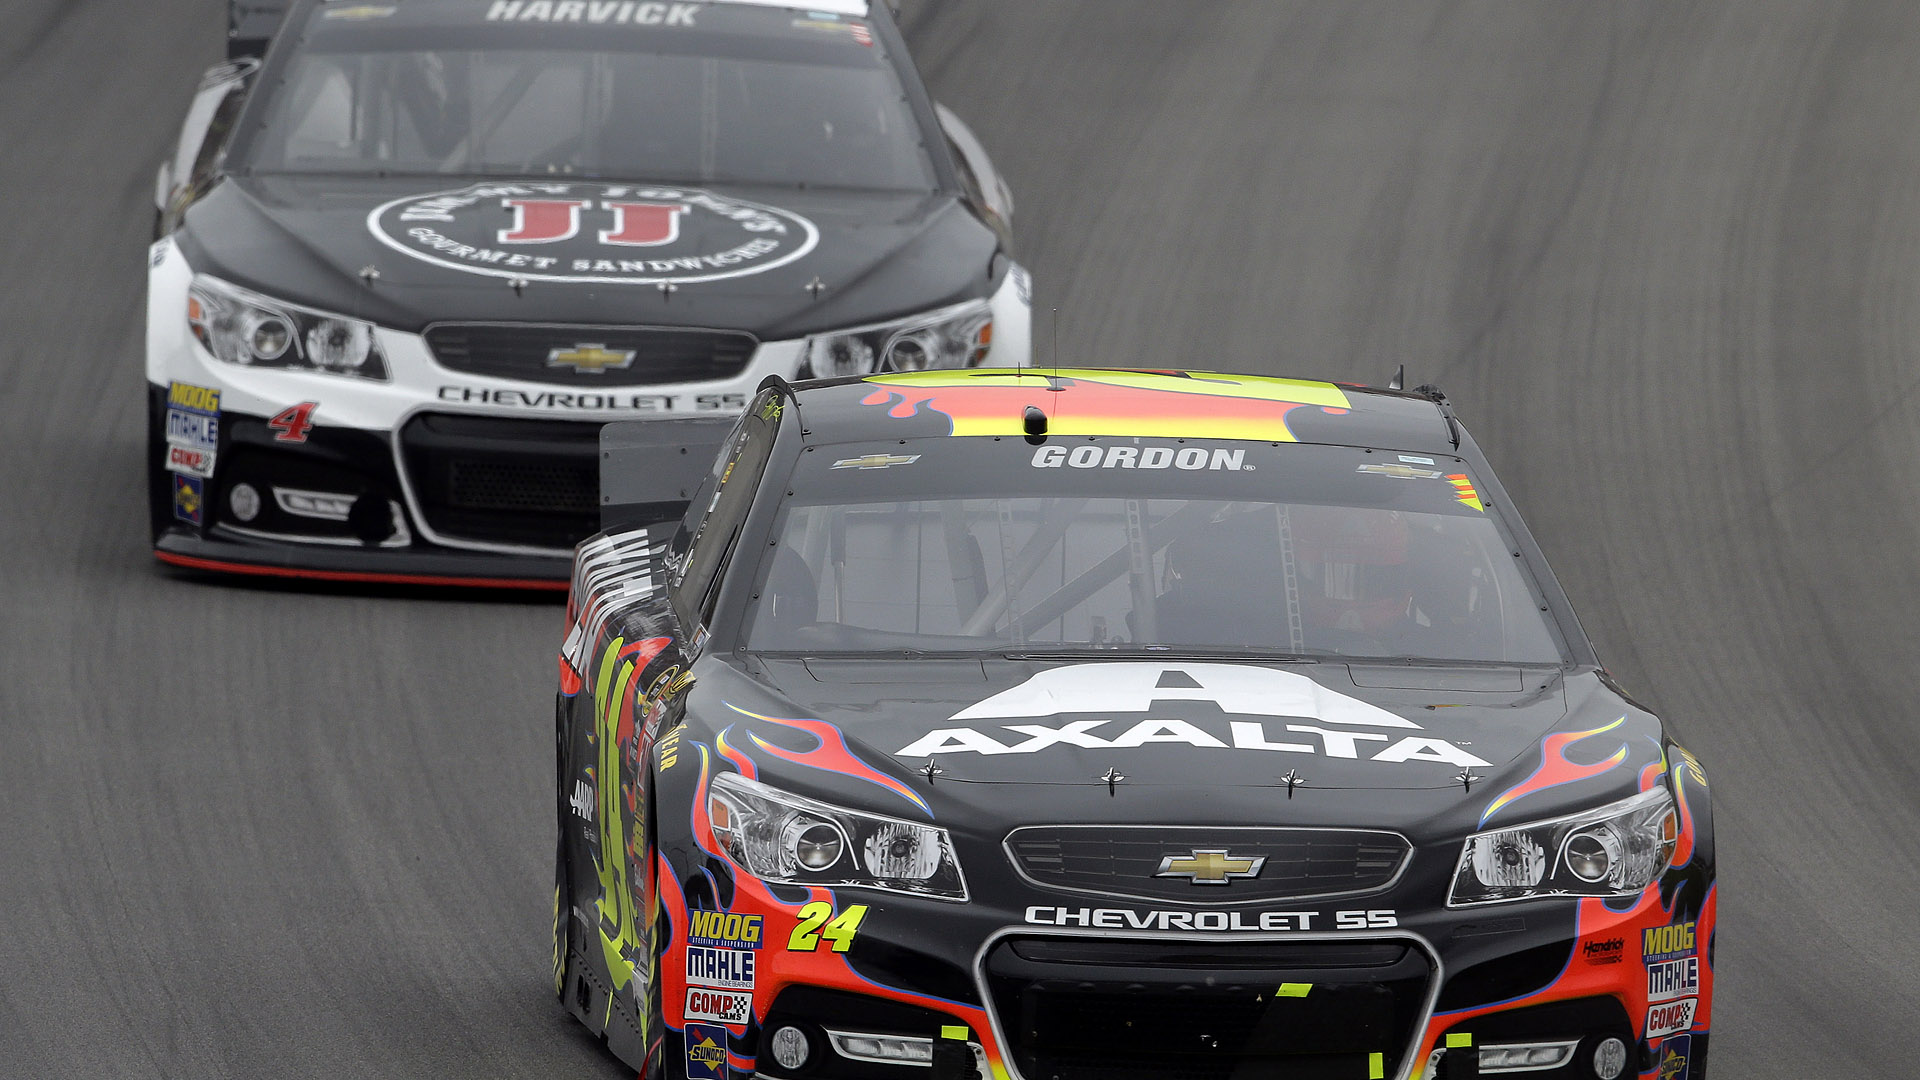 Jeff Gordon-081714-AP-FTR.jpg